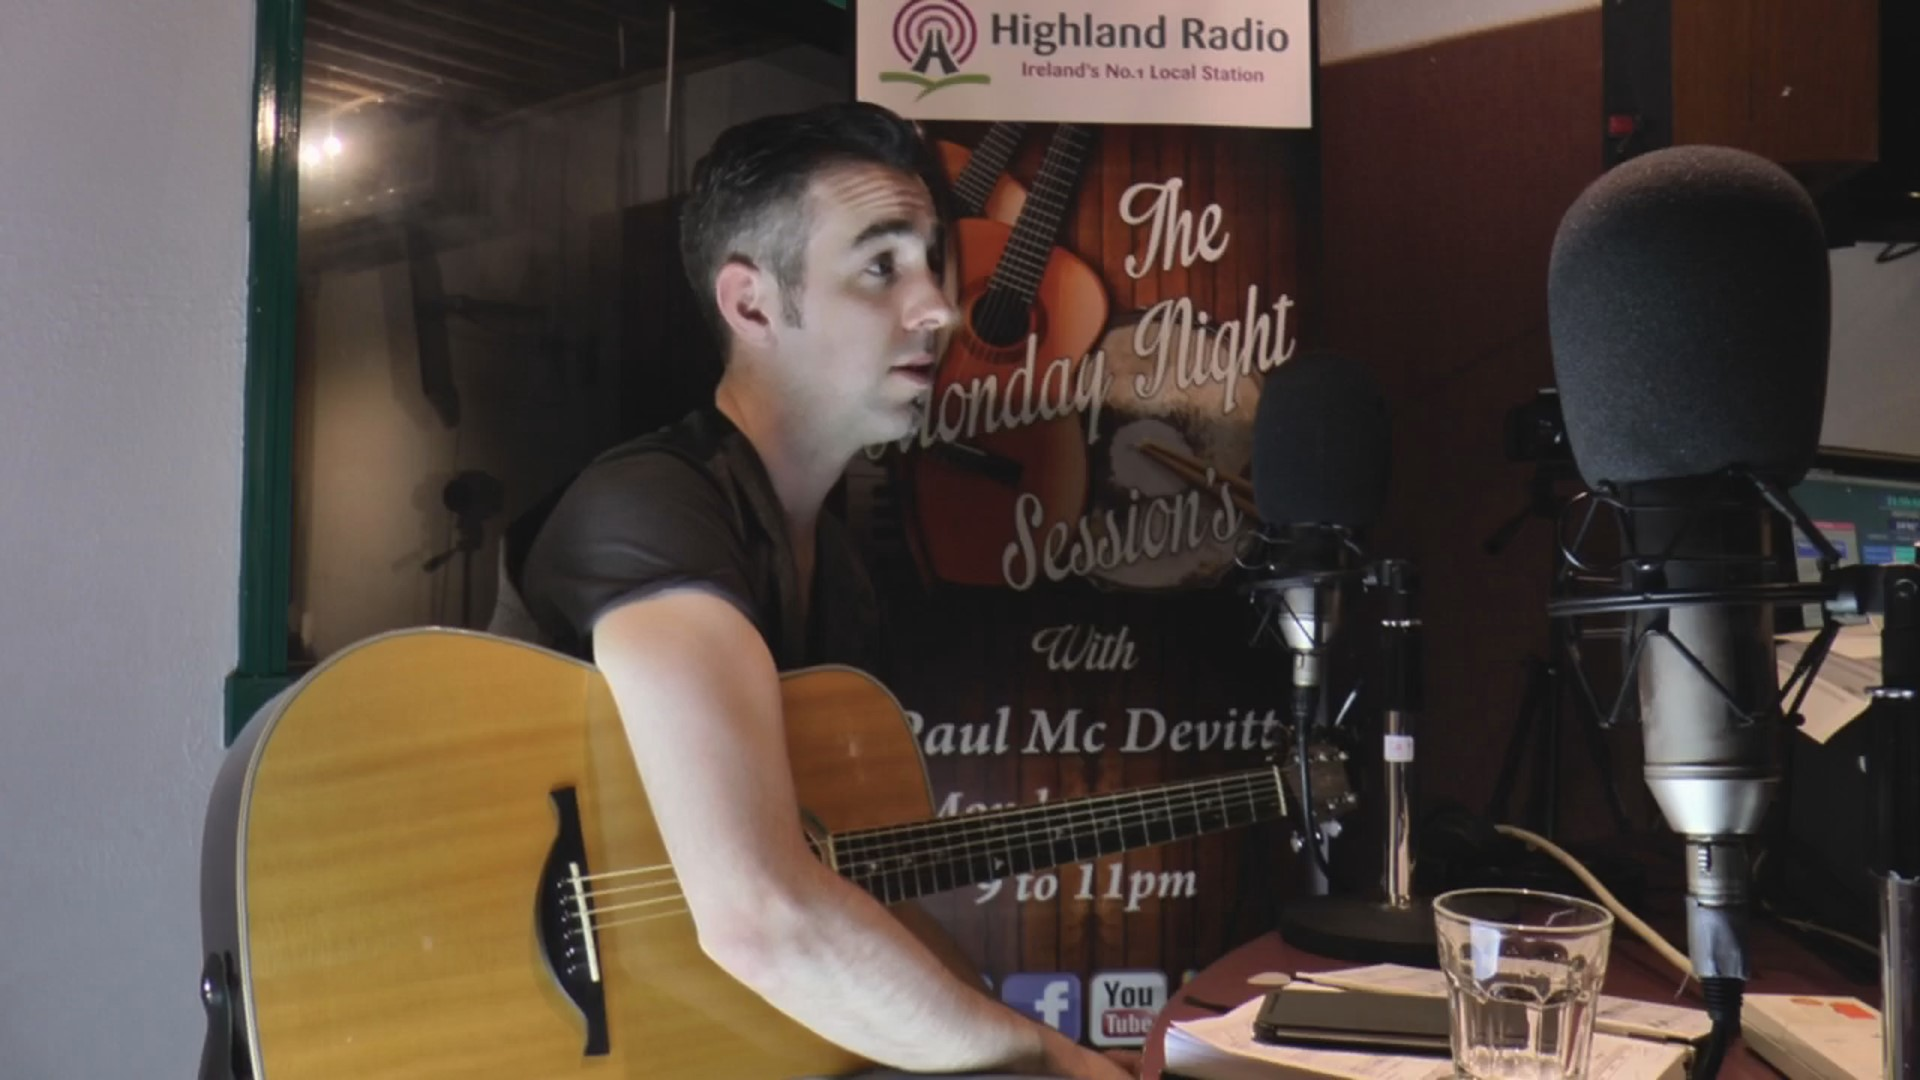 Barry Jay Hughes Live on Highland Radio